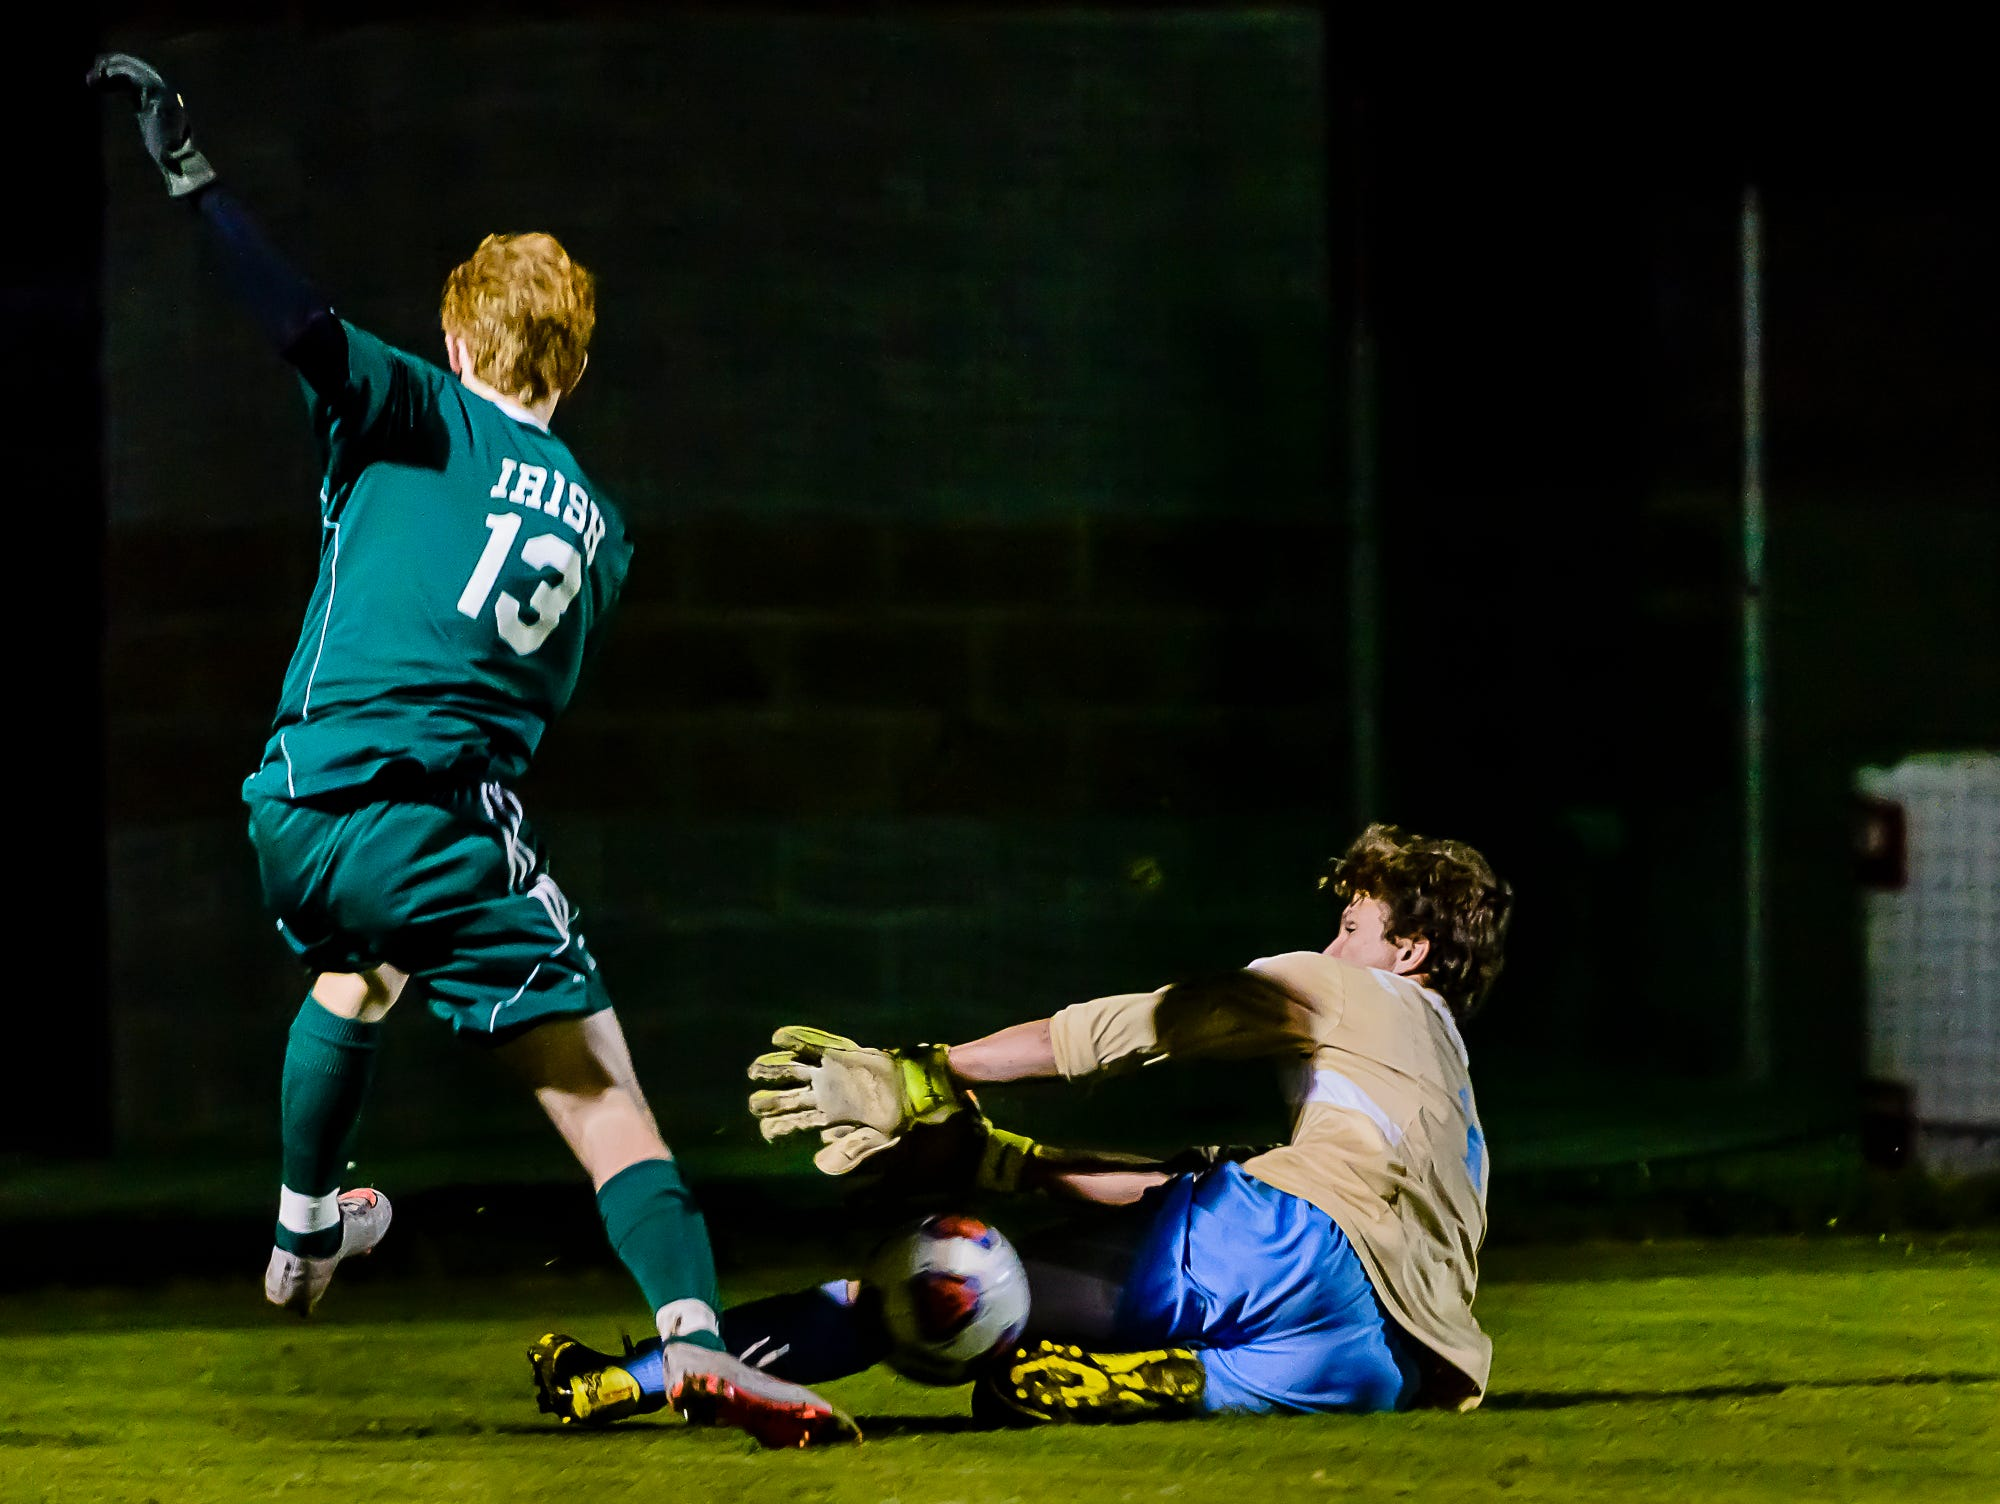 Mattjew Benivegna ,right, Lansing Catholic goalie slides to block a shot on goal by Brenden Cupchak ,13, of Gabriel Richard late in the 1st half of their Division 3 regional quarterfinal game Tuesday October 25, 2016 in Williamston. The ball would pop oer Benivegna and give Juan Sancho of Gabriel Richard a wide open net but the ball would miss wide right. KEVIN W. FOWLER PHOTO